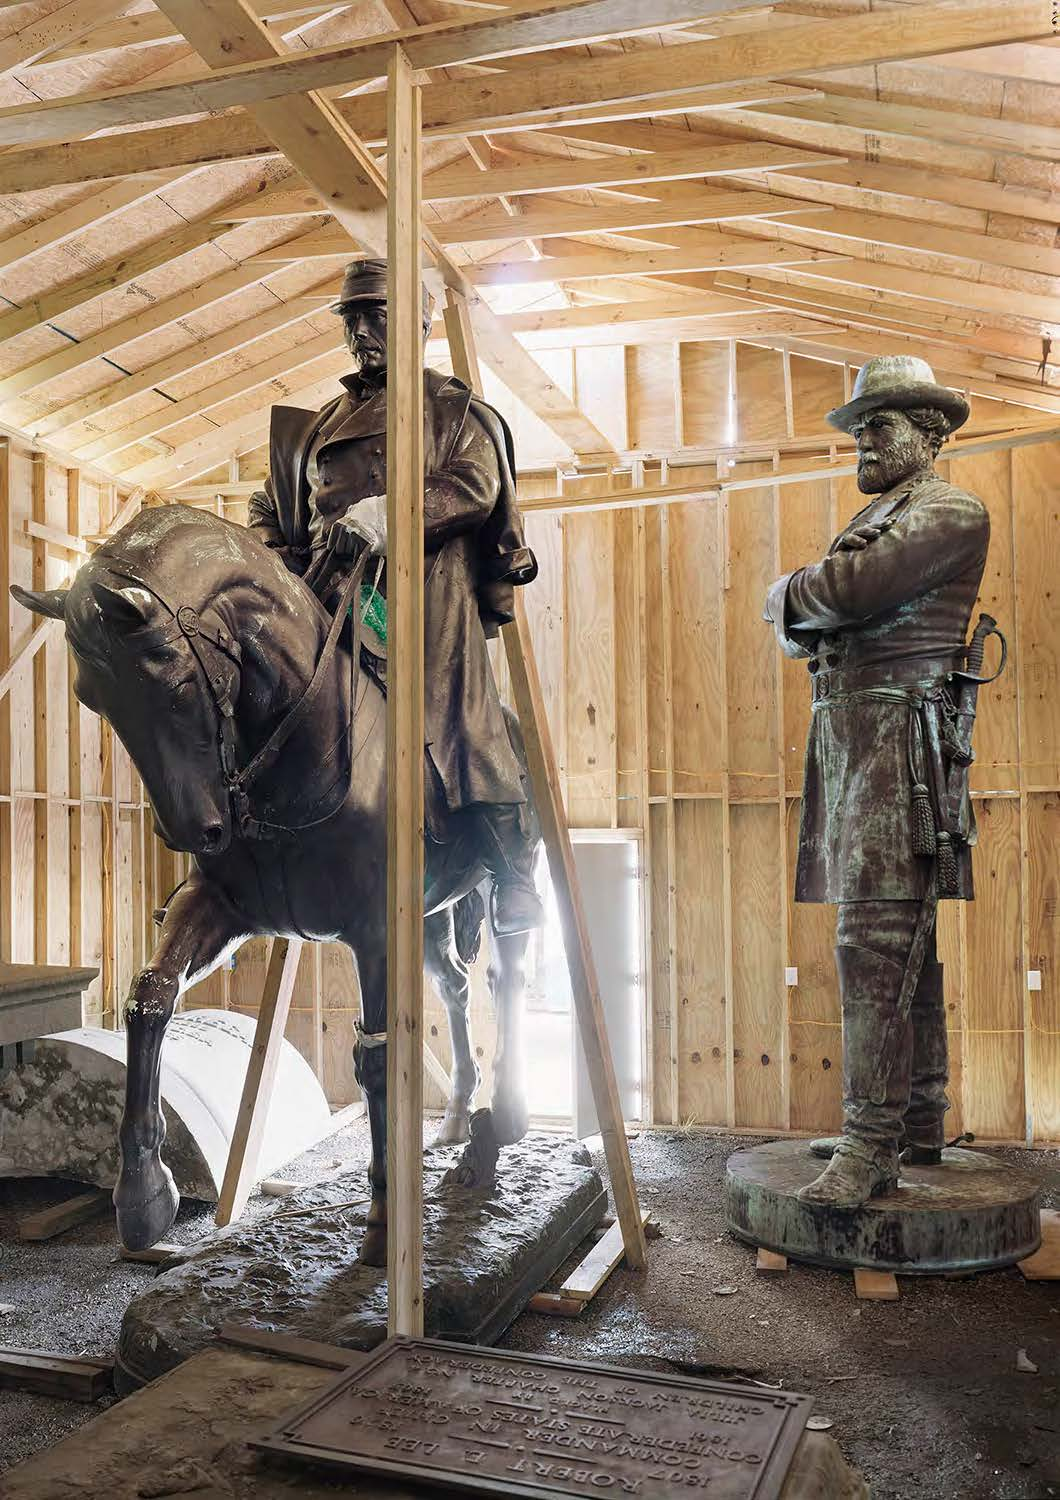 Monuments of Robert E. Lee and P.G.T. Beauregard, in storage in New Orleans, Louisiana.